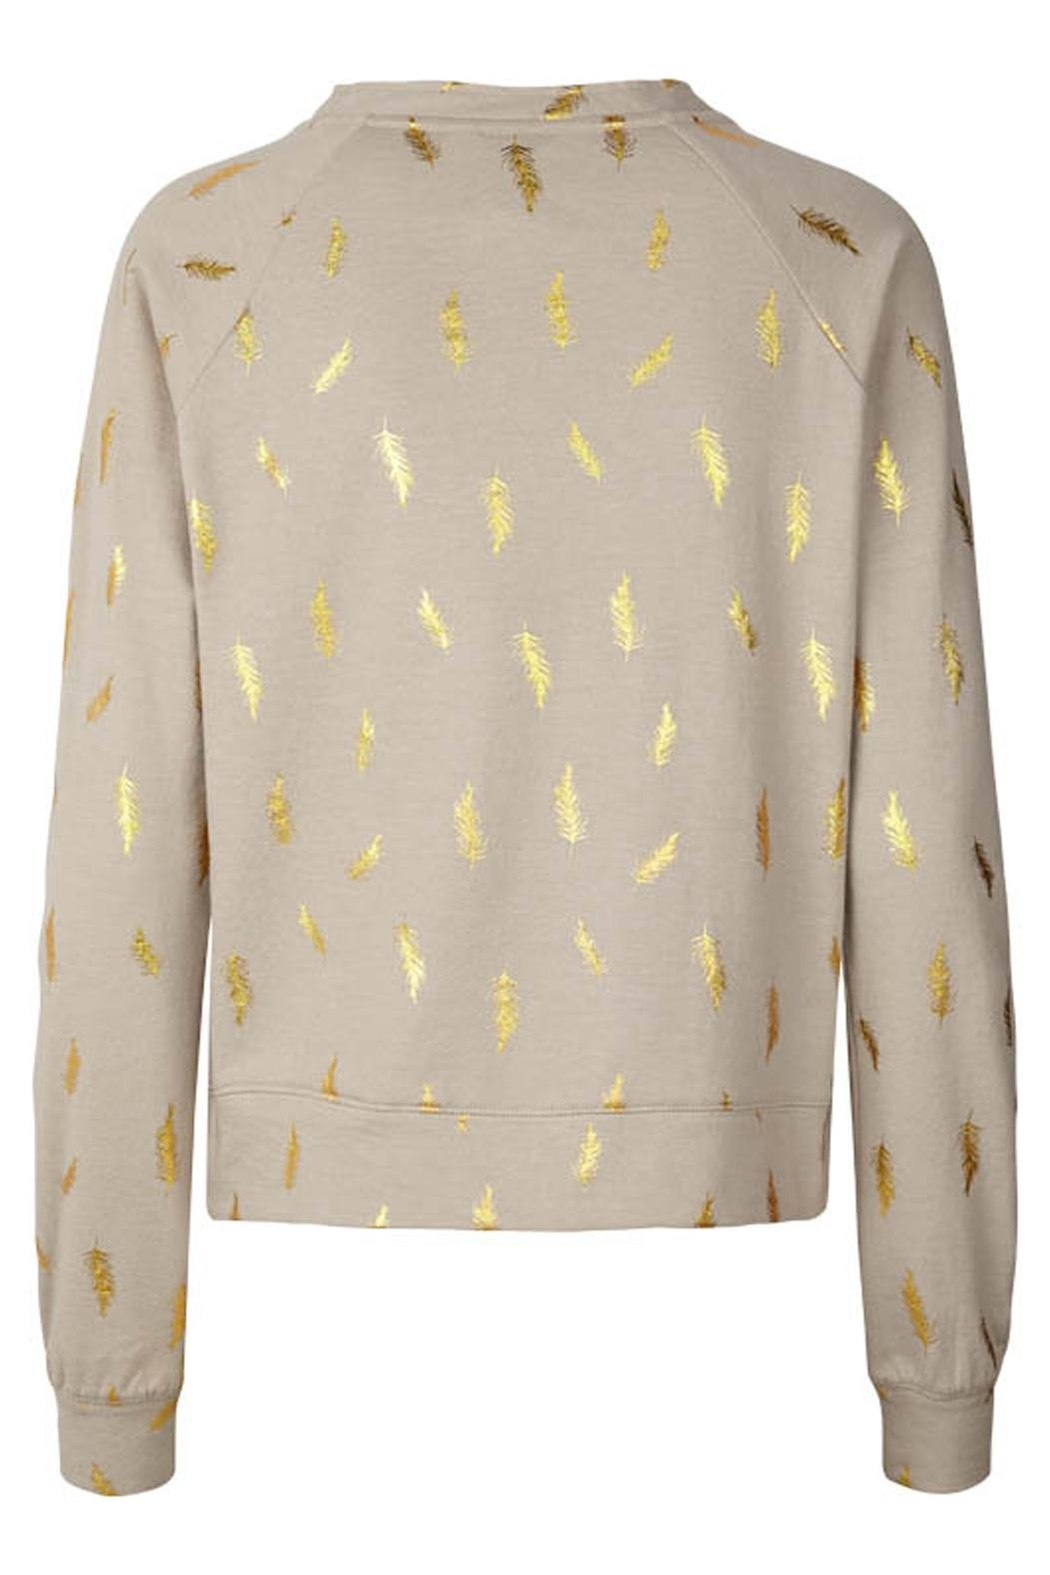 LOLLYS LAUNDRY Gold Featherd Sweatshirt - Front Full Image